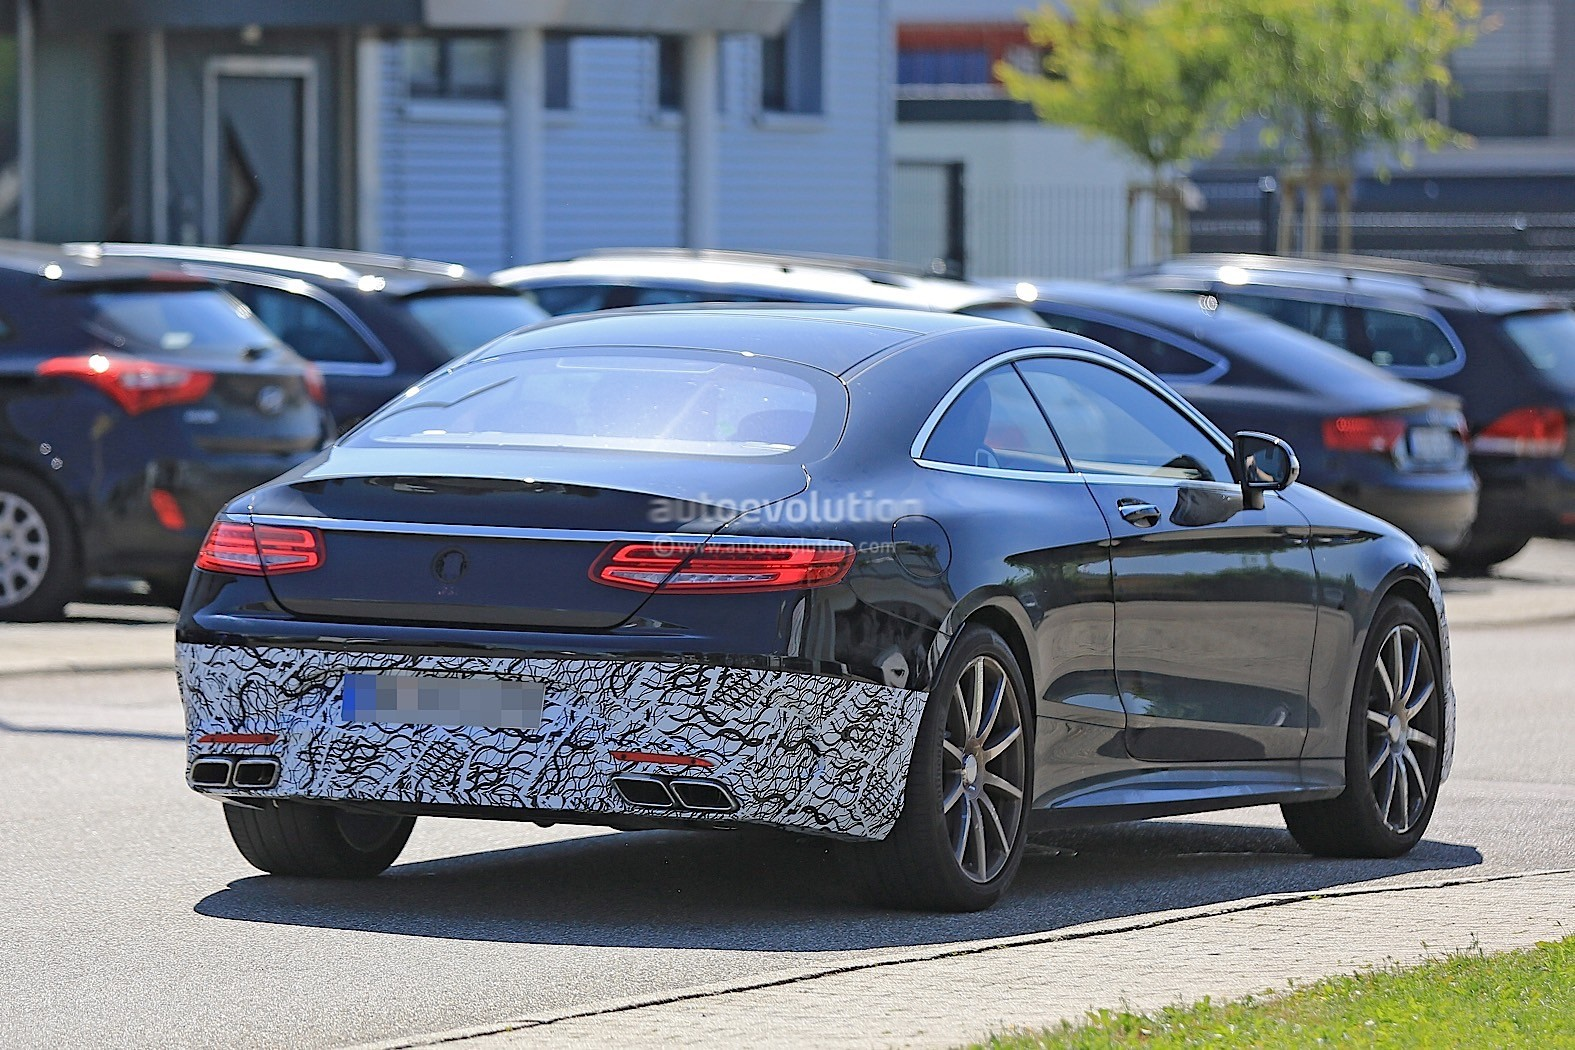 2018 mercedes amg s63 coupe facelift caught testing for the first time autoevolution. Black Bedroom Furniture Sets. Home Design Ideas